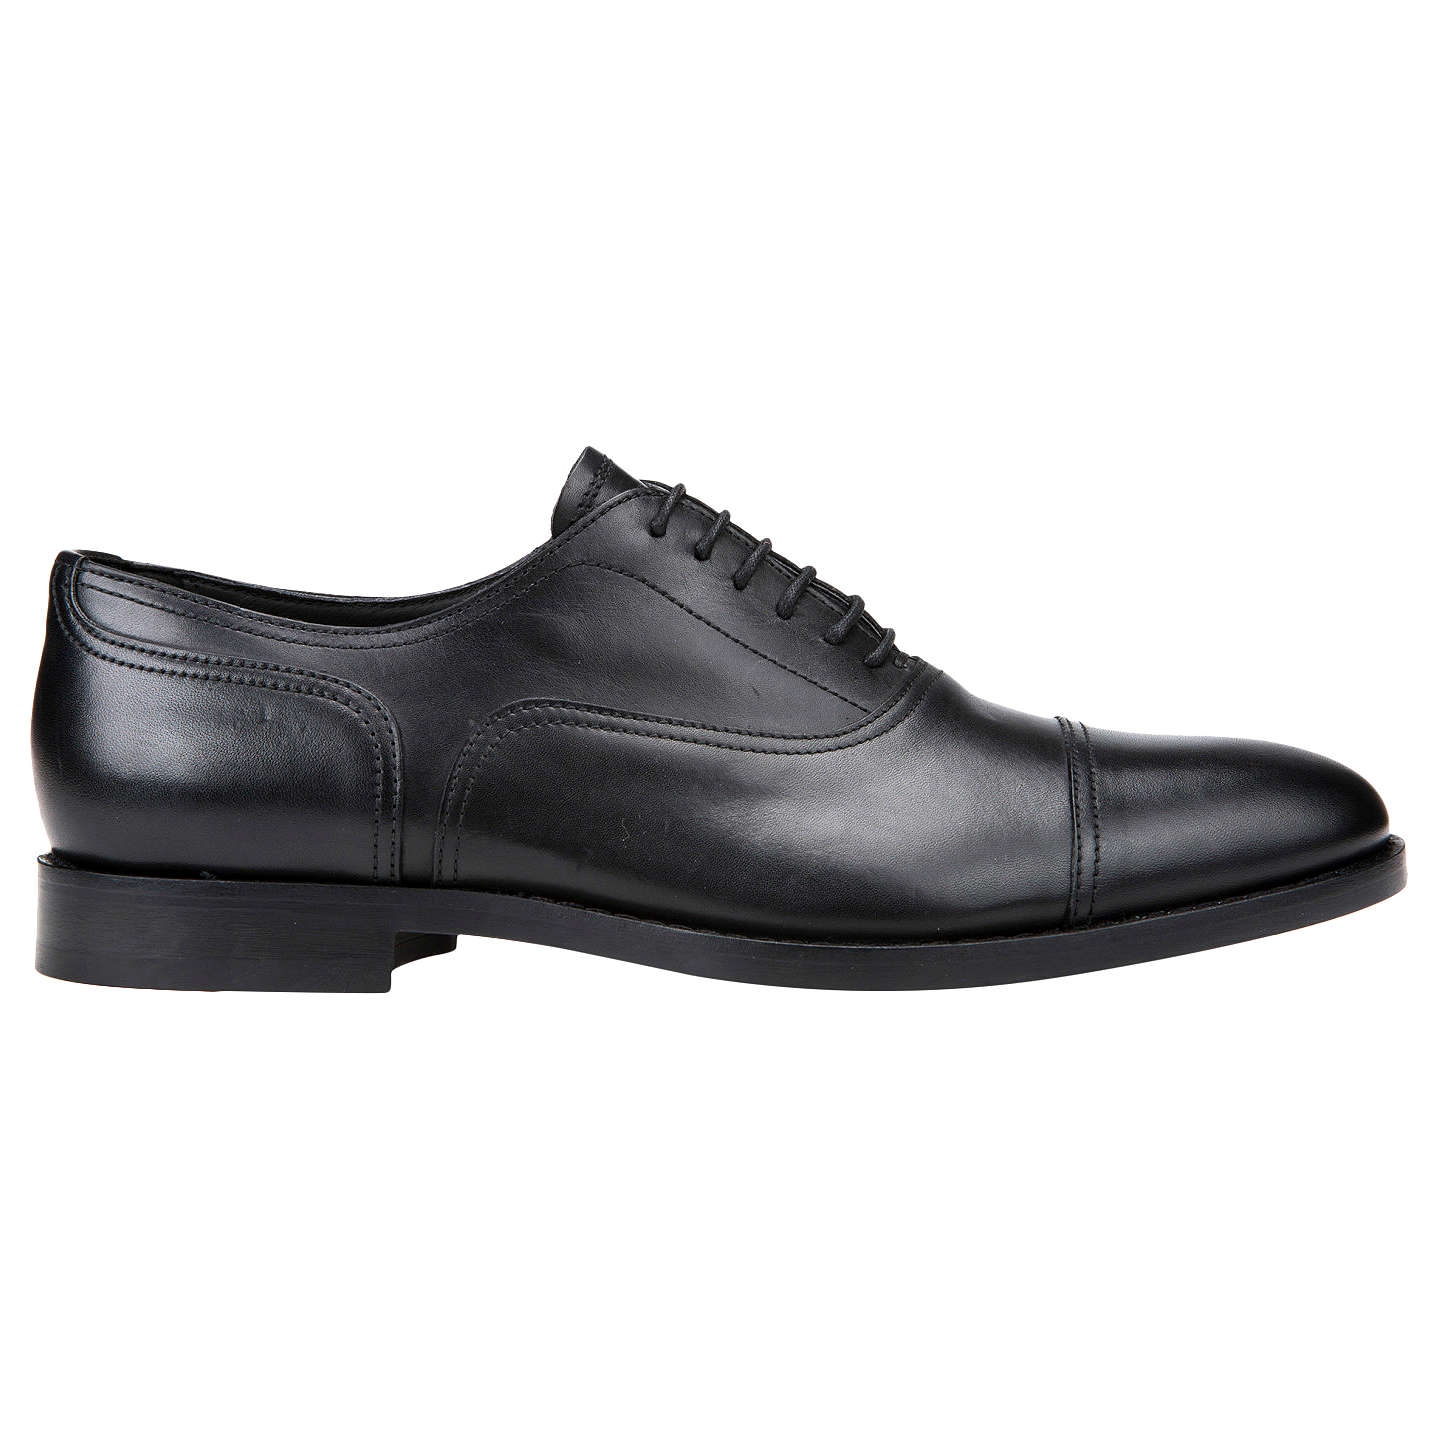 BuyGeox Hampstead Leather Oxford Shoes, Black, 7 Online at johnlewis.com ...